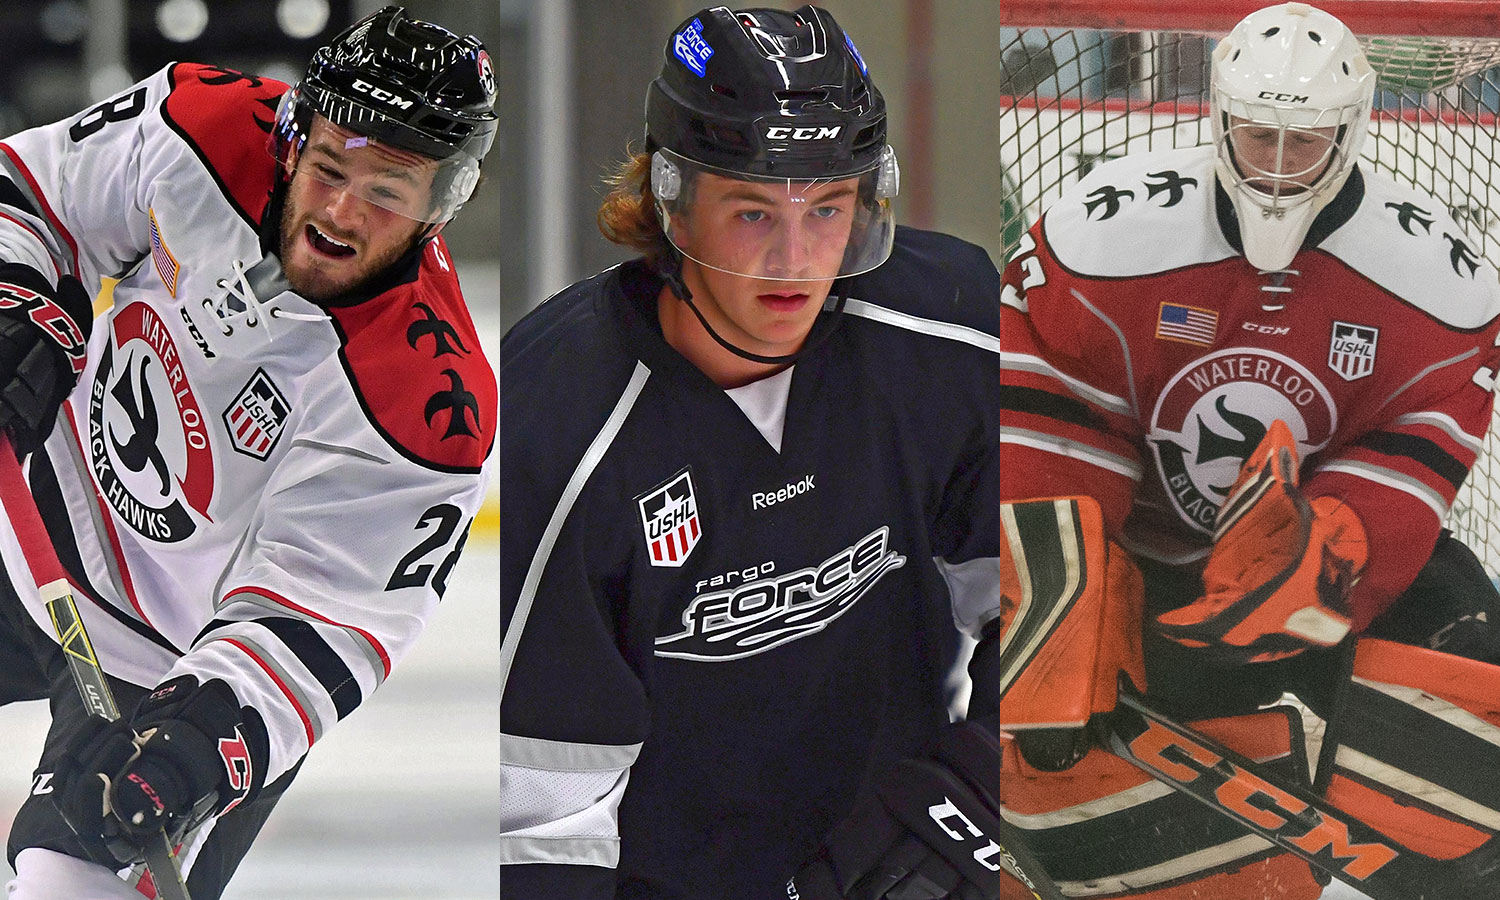 USHL: Players Of The Week